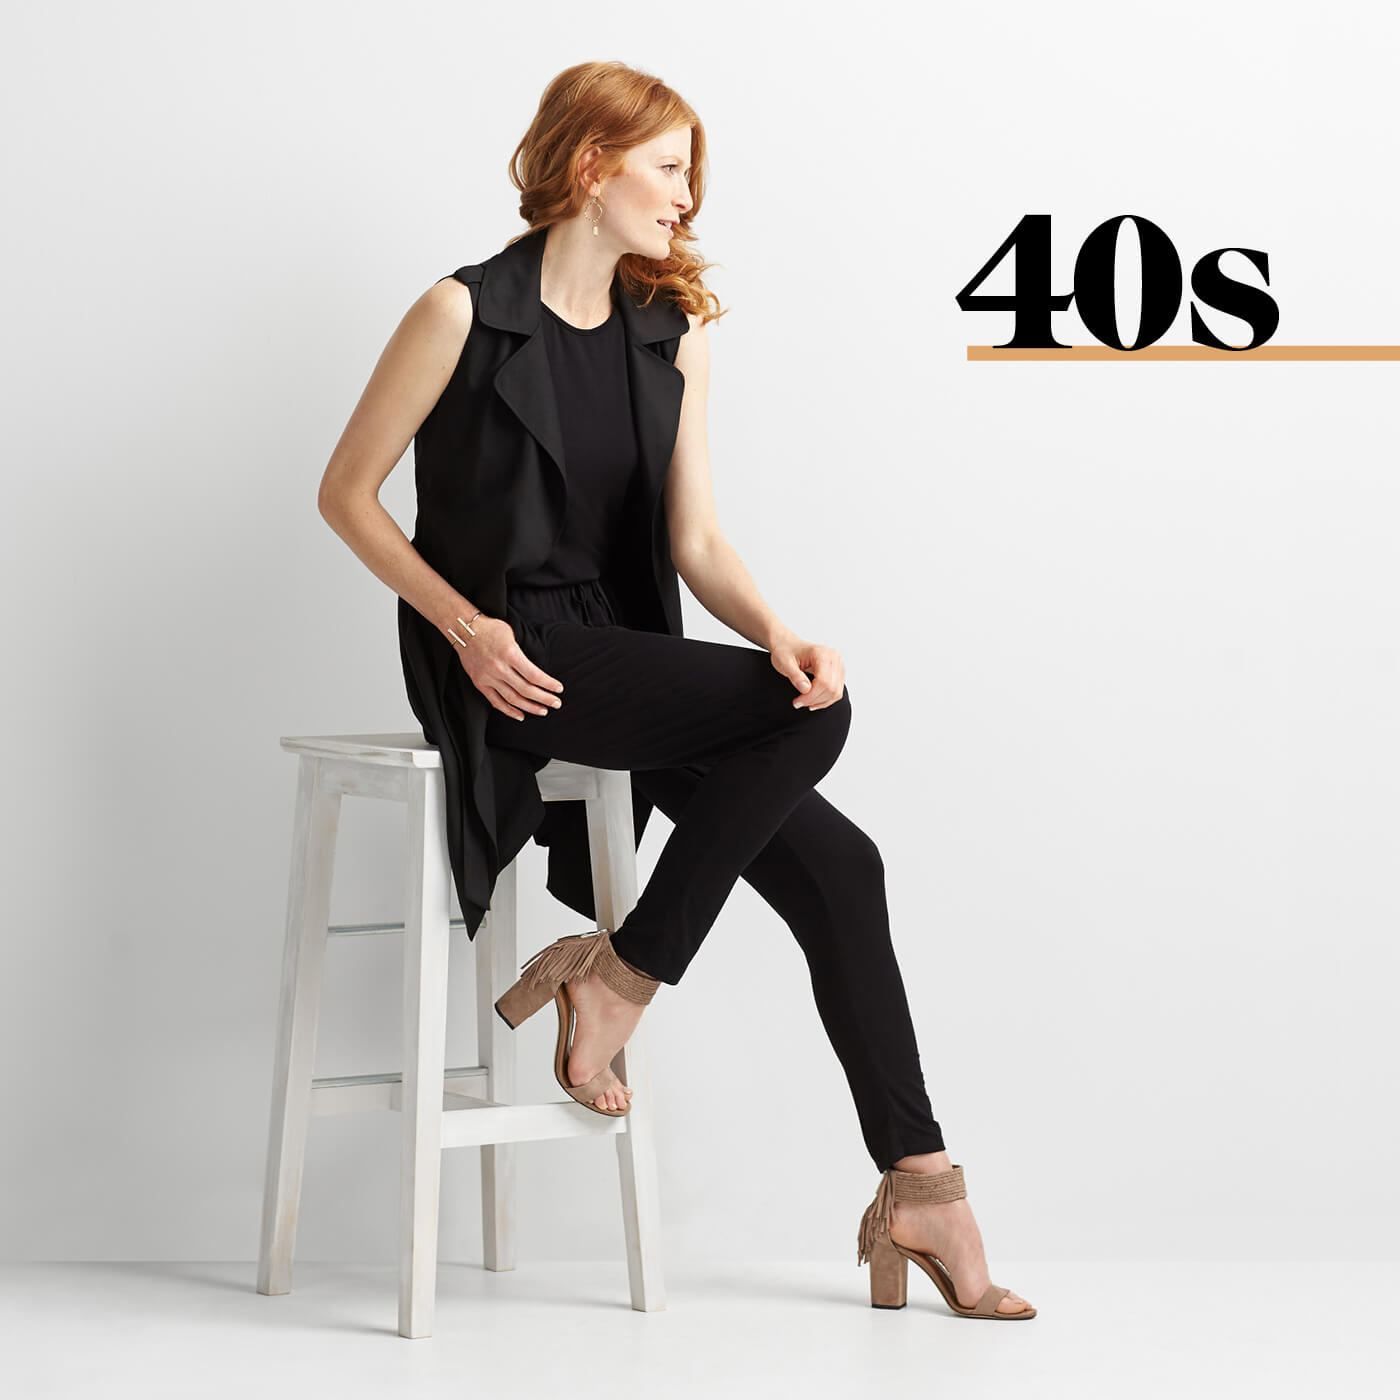 Own Your Style In Your Fabulous 40s Stitch Fix Style